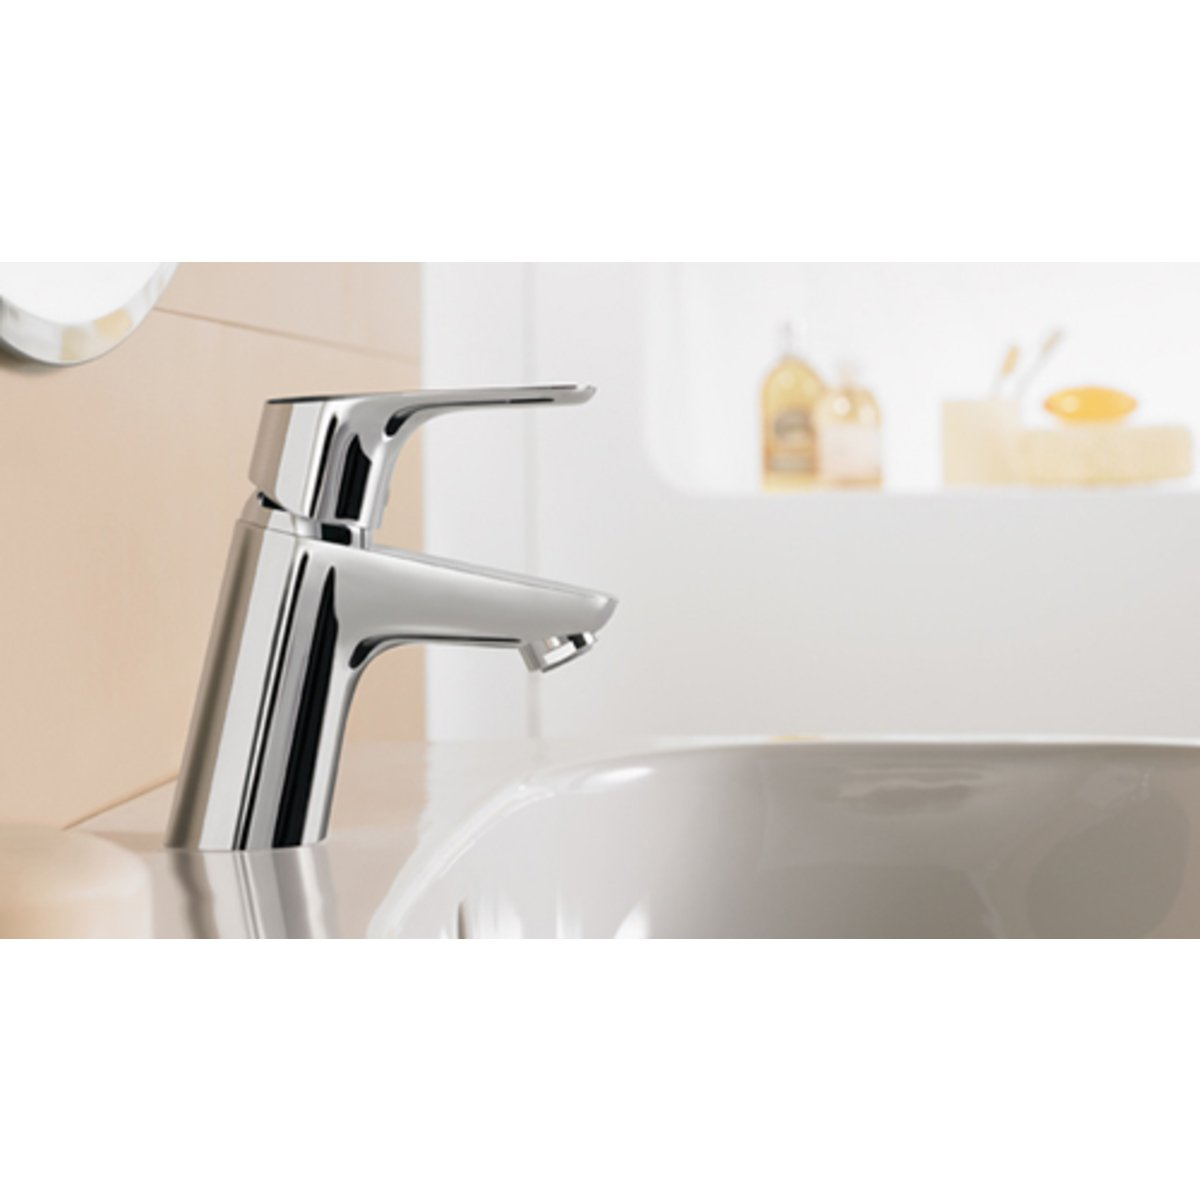 hansgrohe focus robinet pour lavabo coolstart 70 avec bonde chrome 31539000. Black Bedroom Furniture Sets. Home Design Ideas